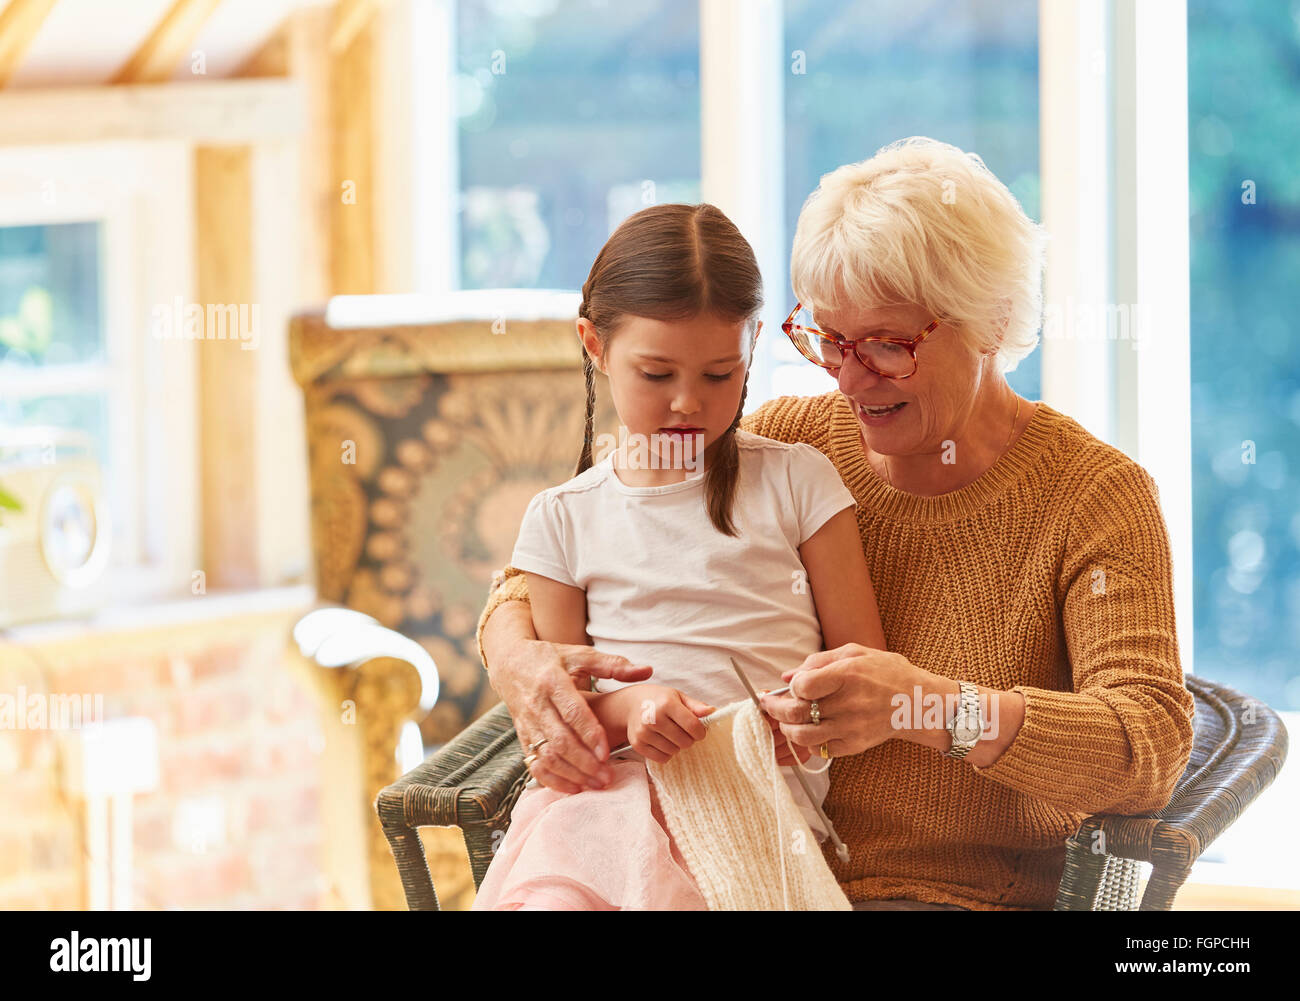 Grandmother teaching granddaughter knitting - Stock Image